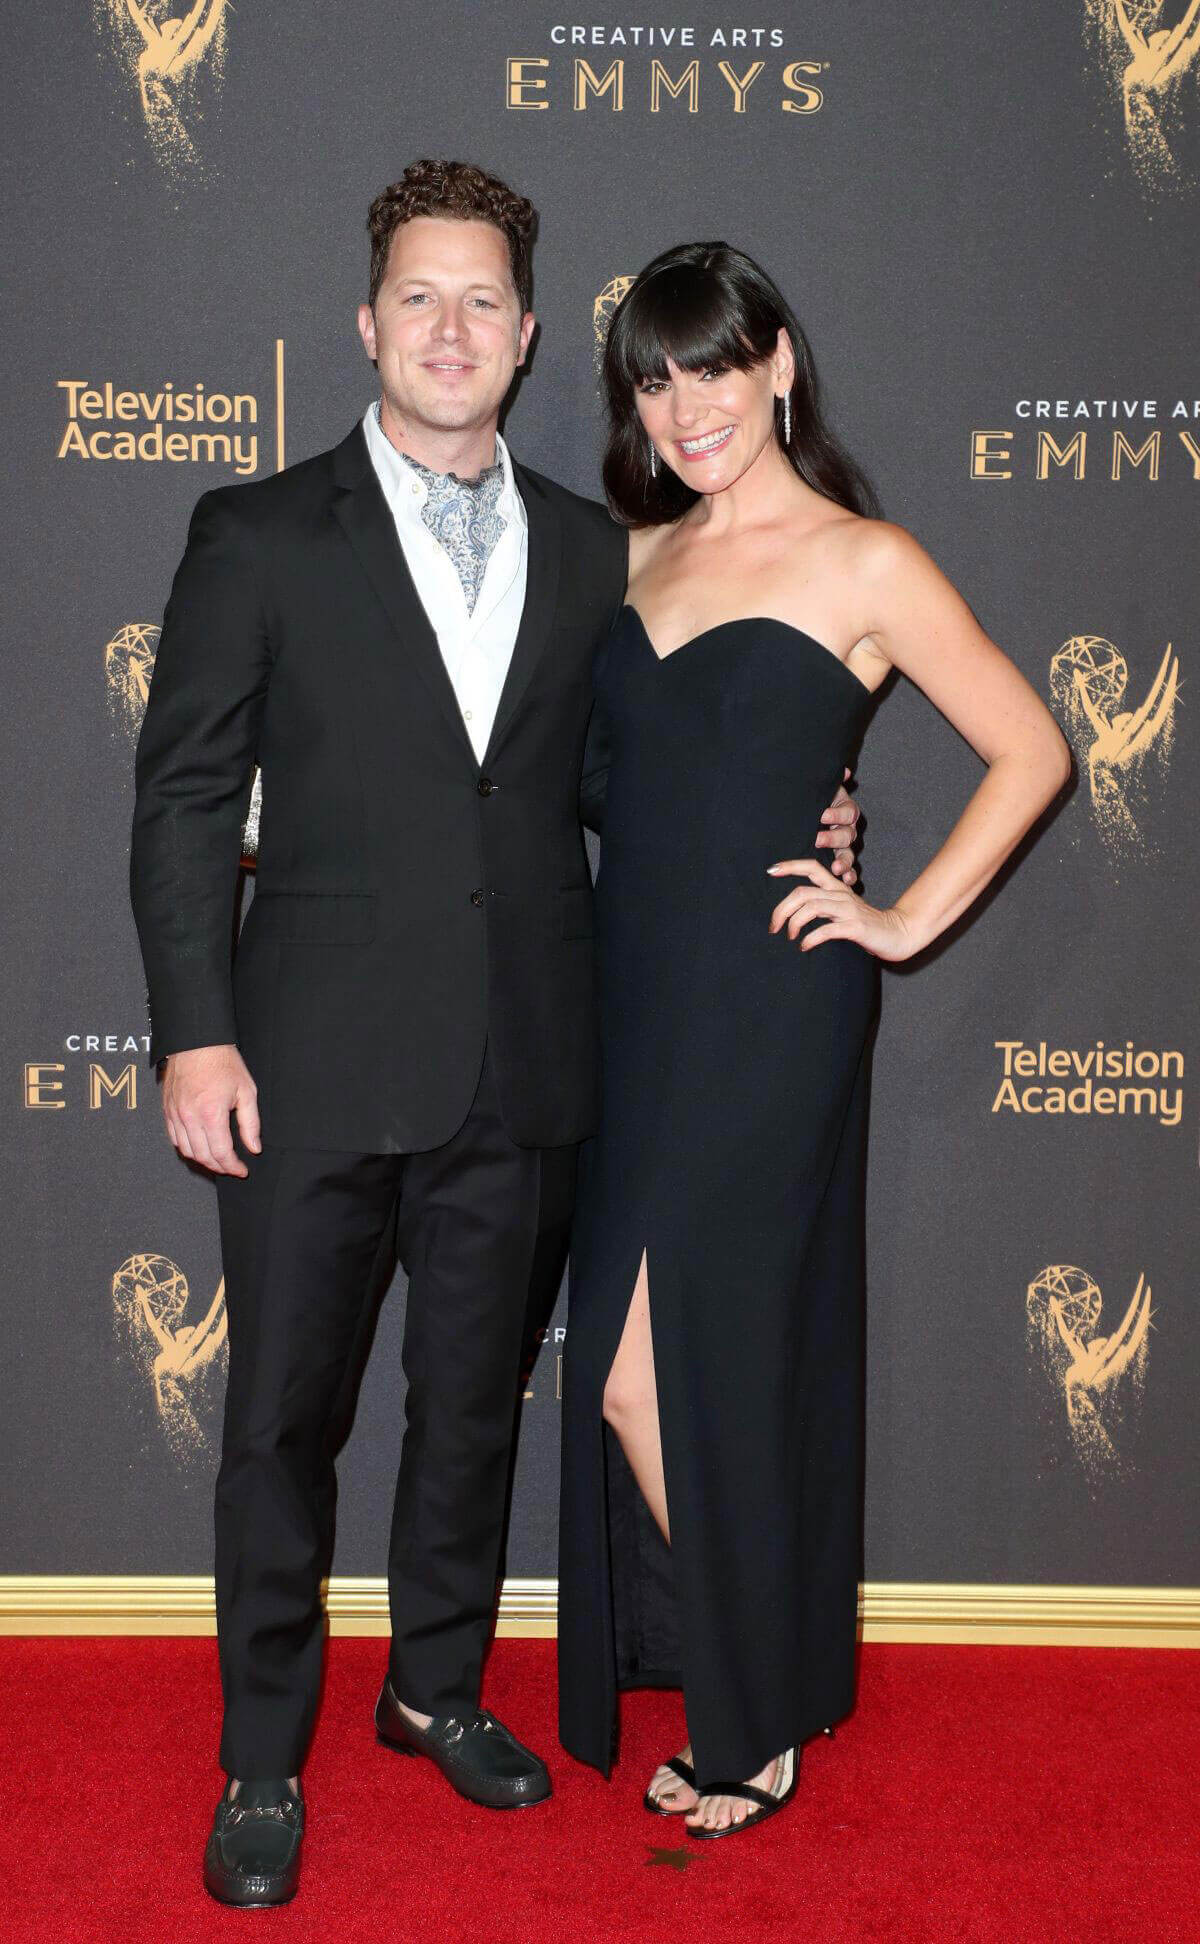 Jillian Leigh at Creative Arts Emmy Awards in Los Angeles